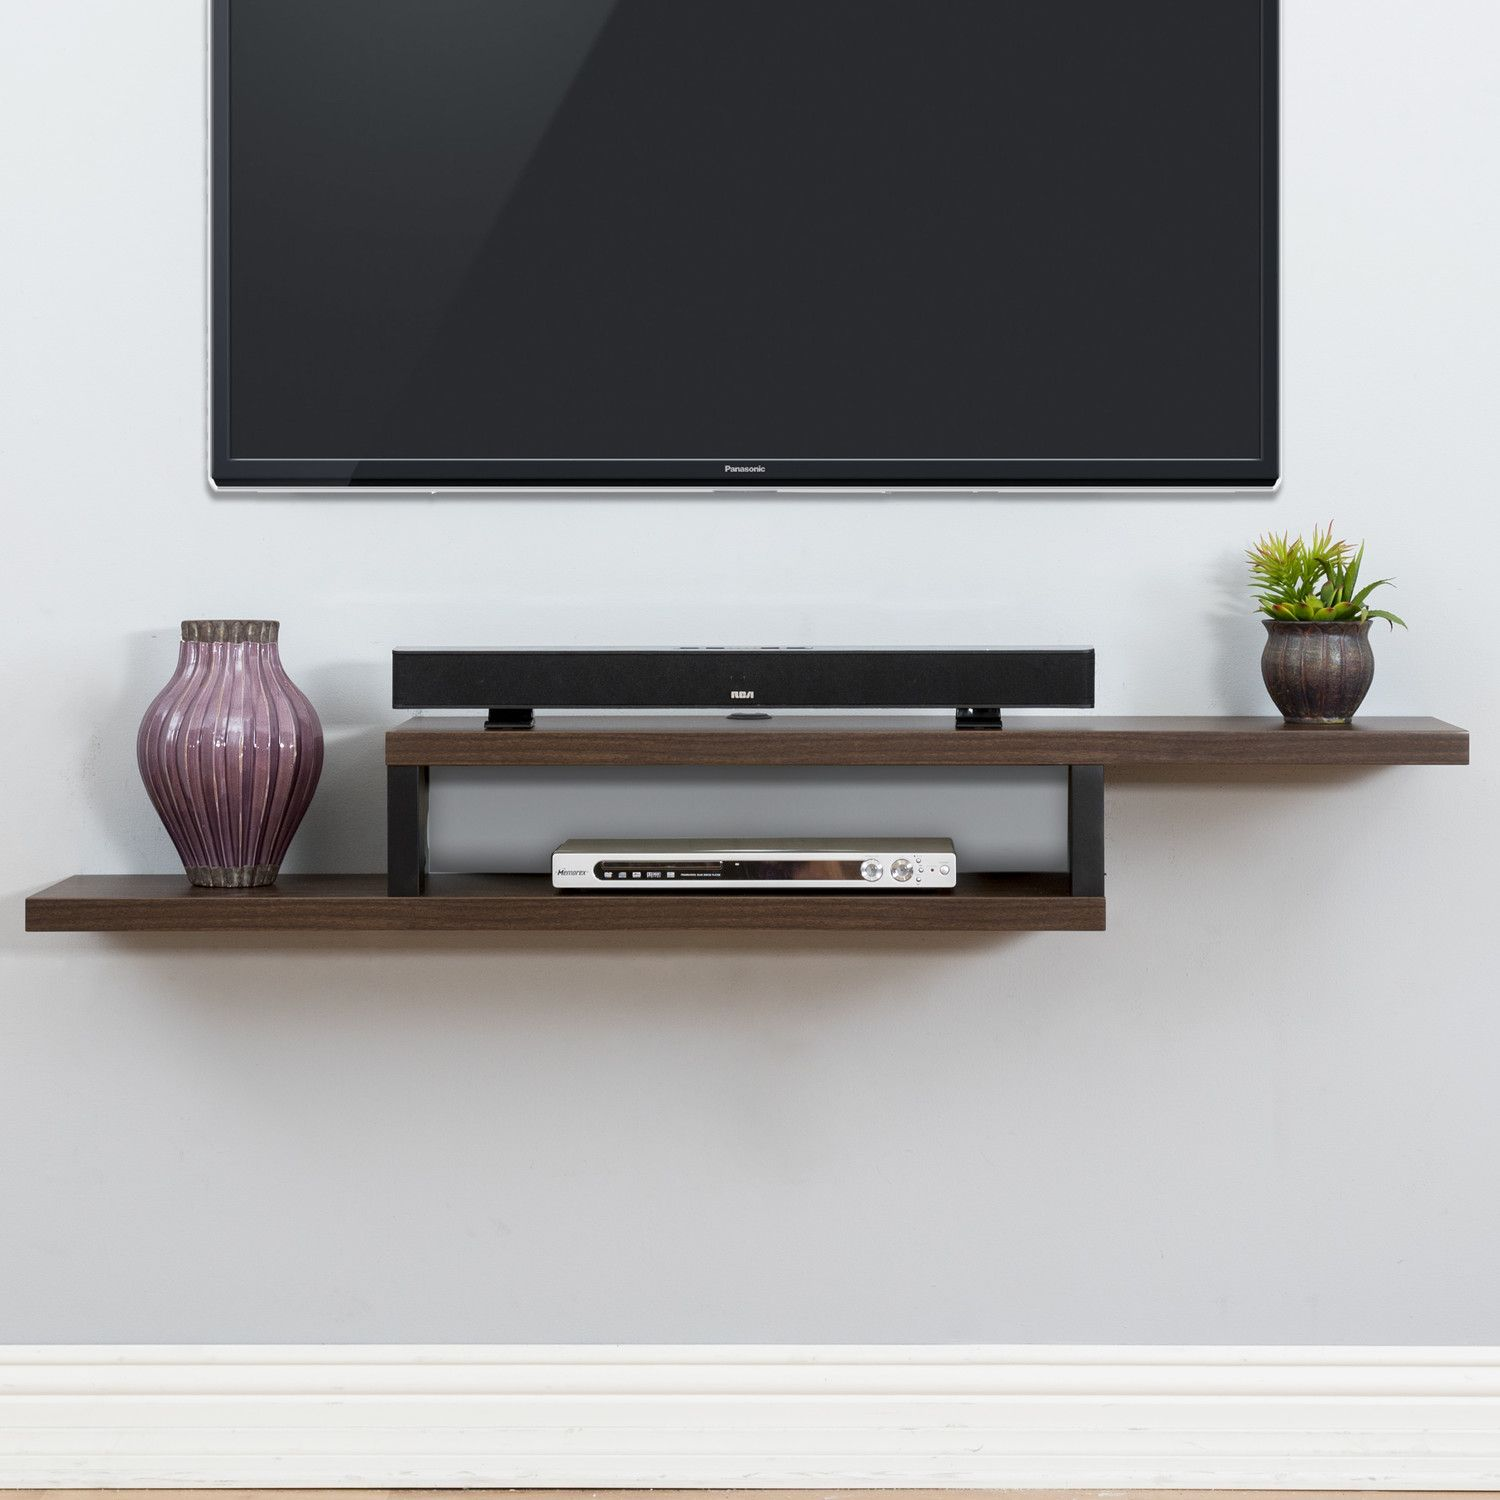 15 Modern Tv Wall Mount Ideas For Living Room Mounted Tv Wall  # Meuble Support Tv Blanc